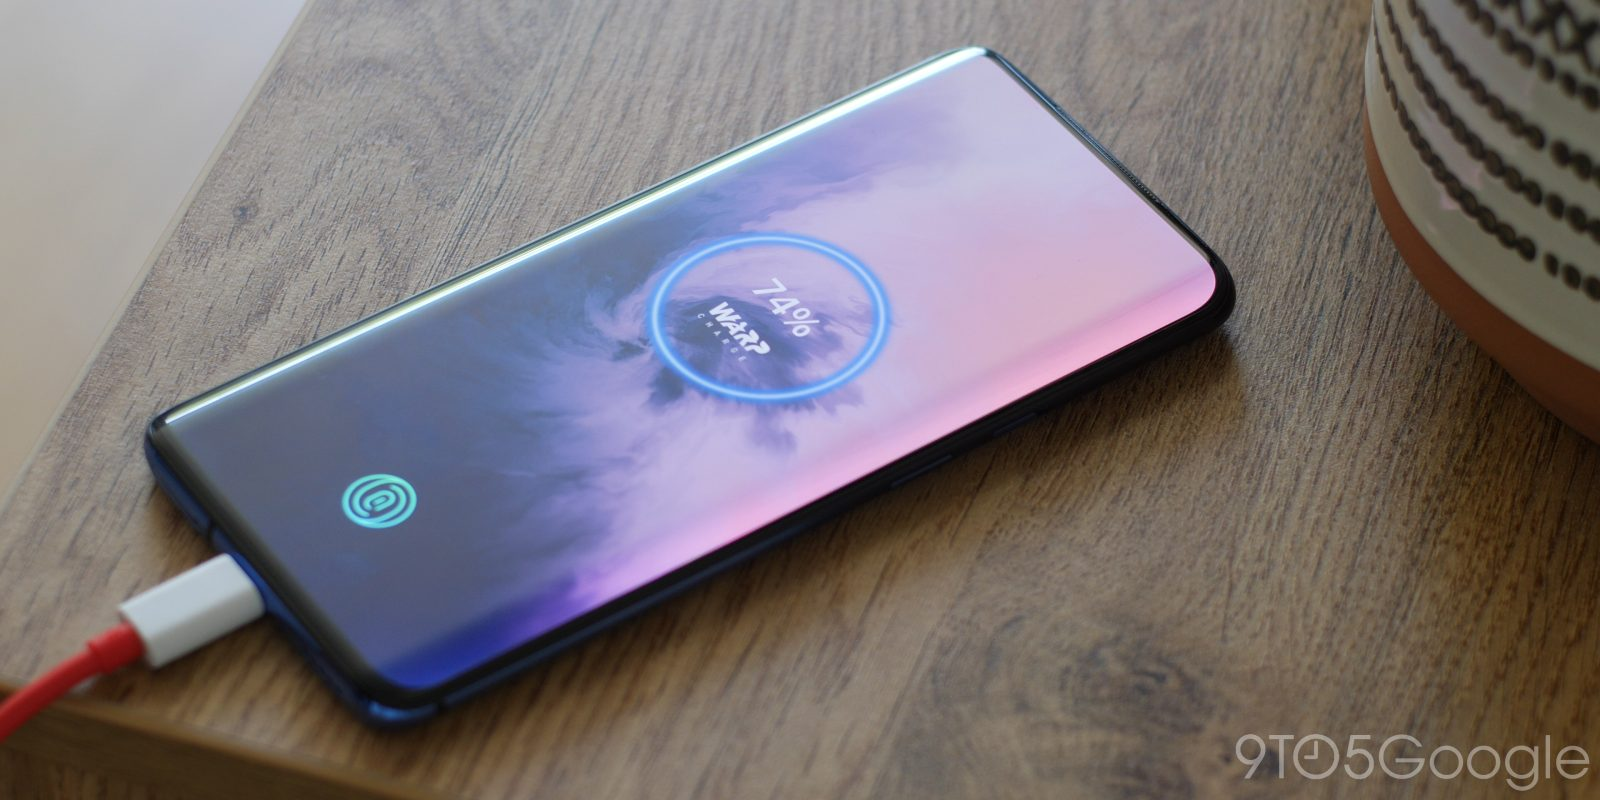 OnePlus 7T will charge 23% faster than the OnePlus 7 Pro w/ Warp Charge 30T